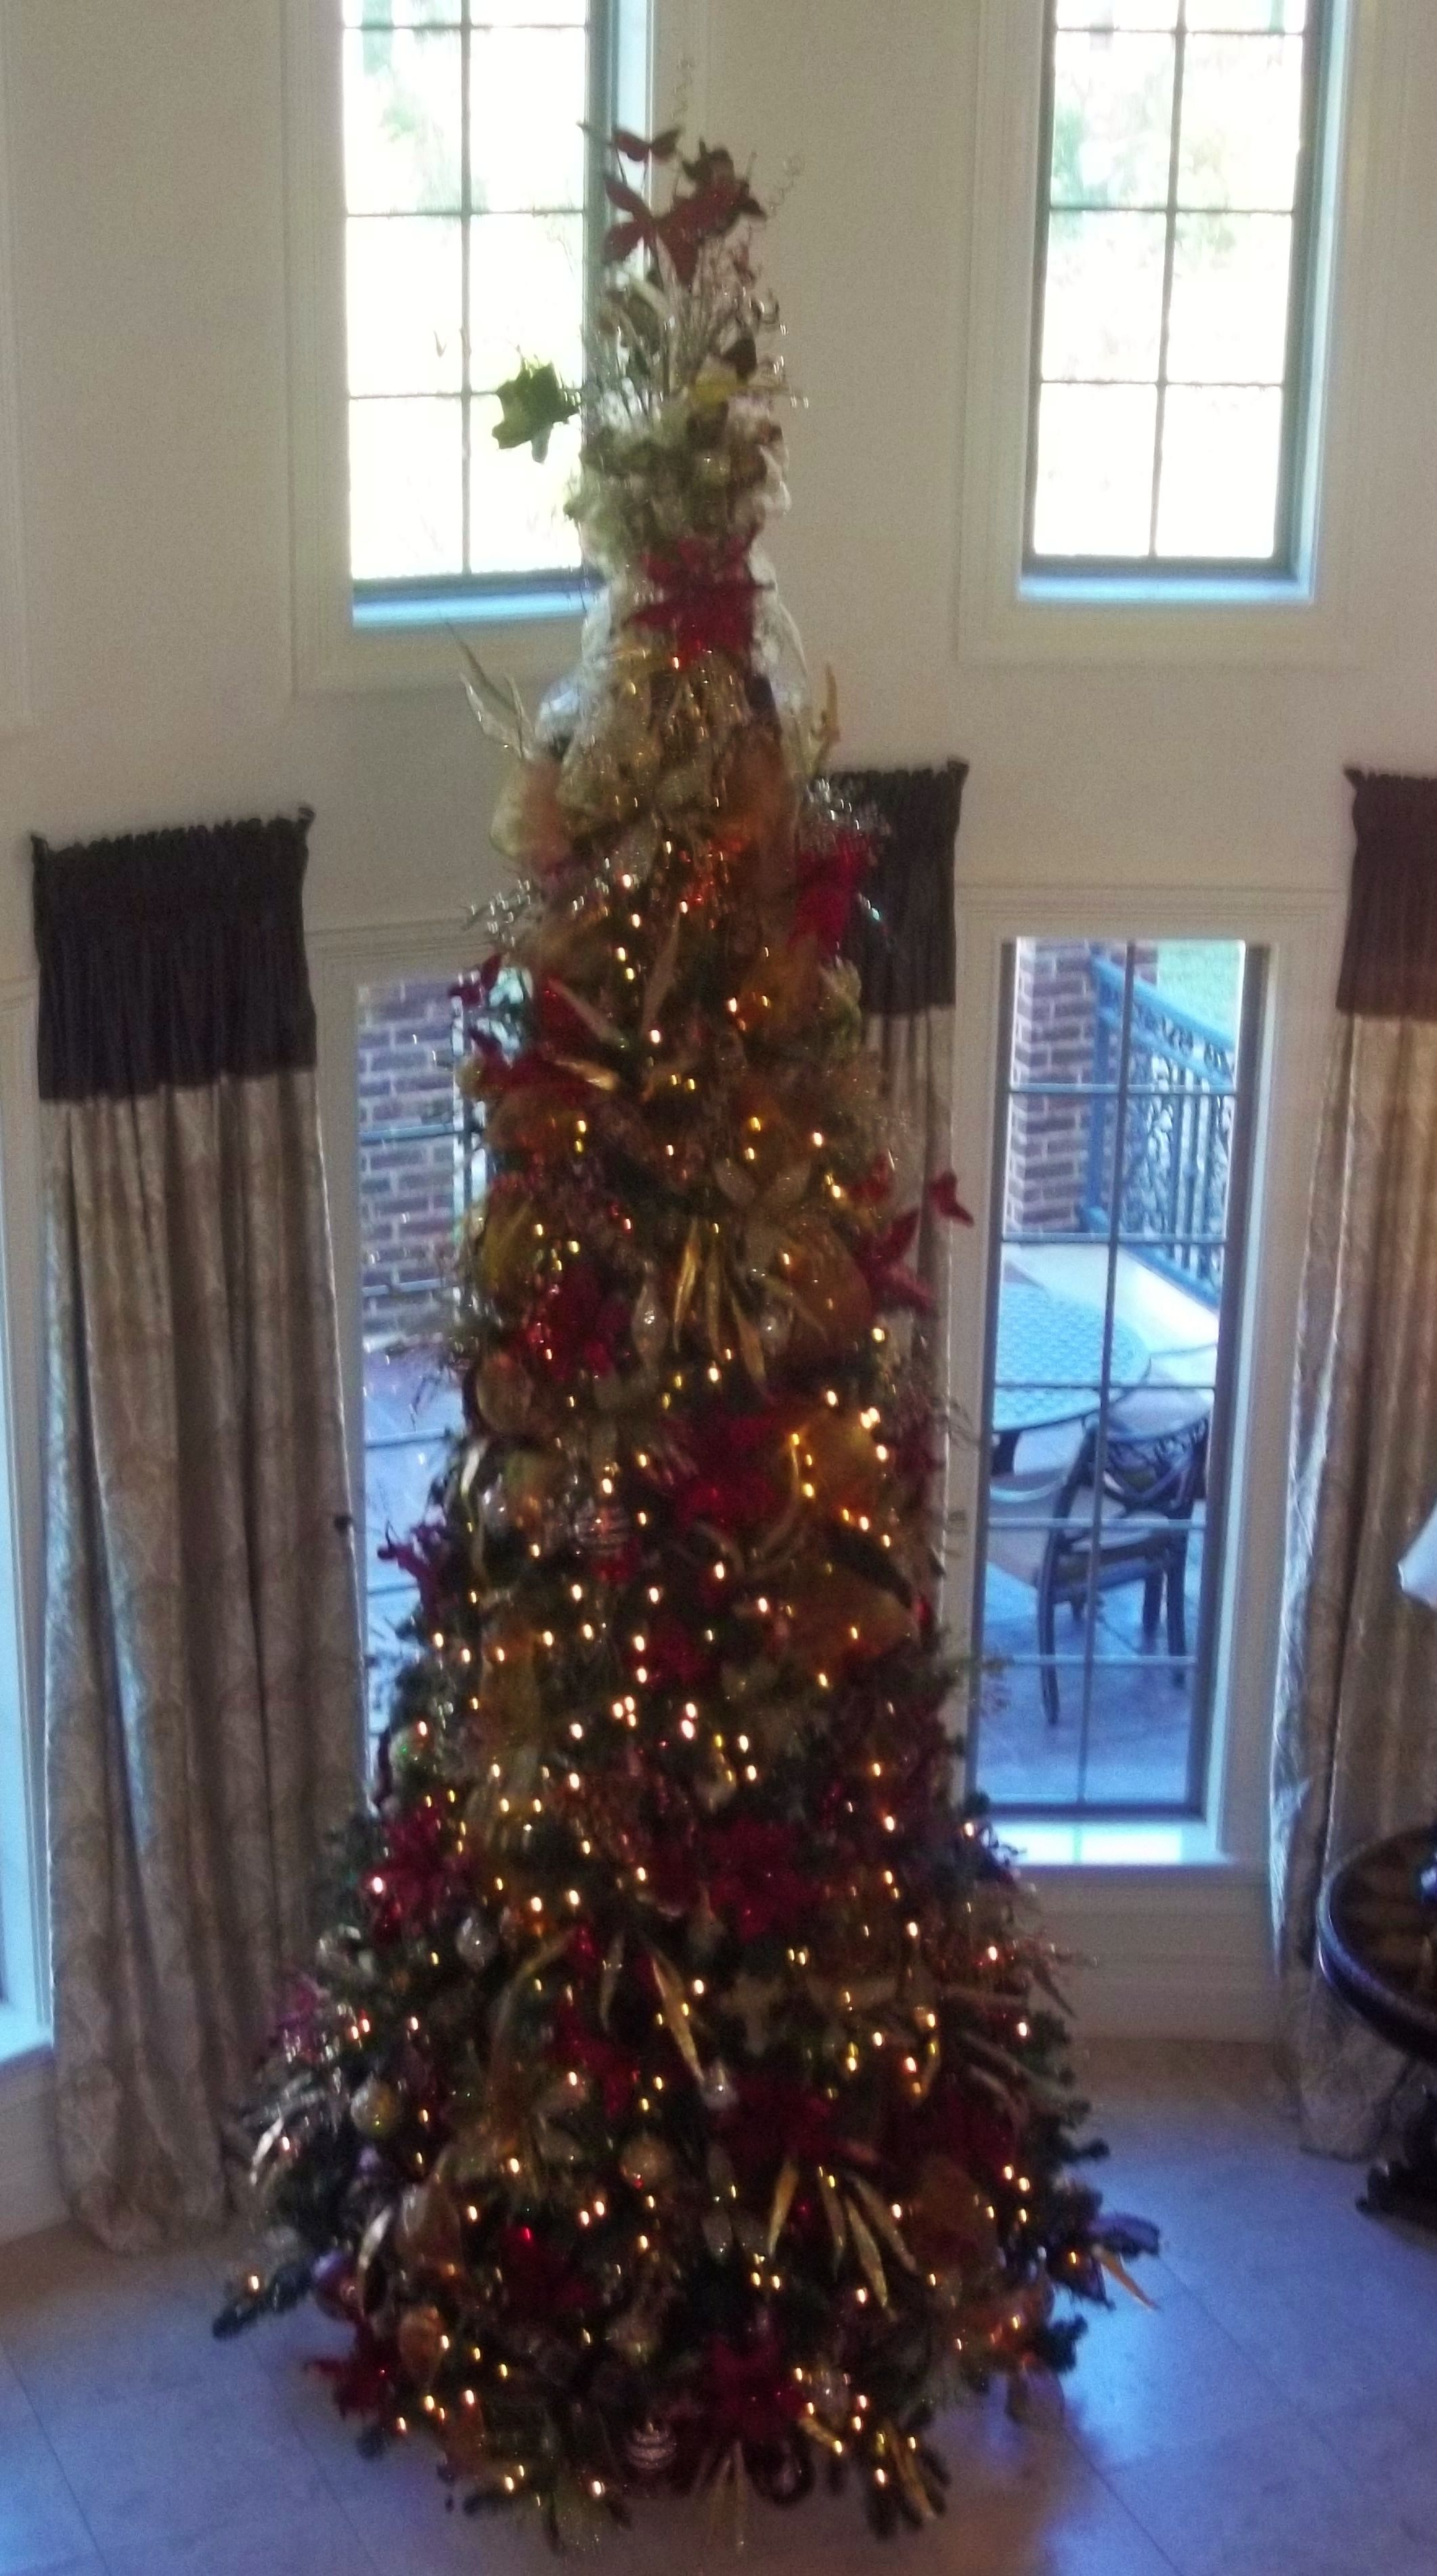 A 12 Ft Tree I Decorated Featuring A Custom Made Tree Topper I Designed And Made Holiday Decor Decor Floral Design